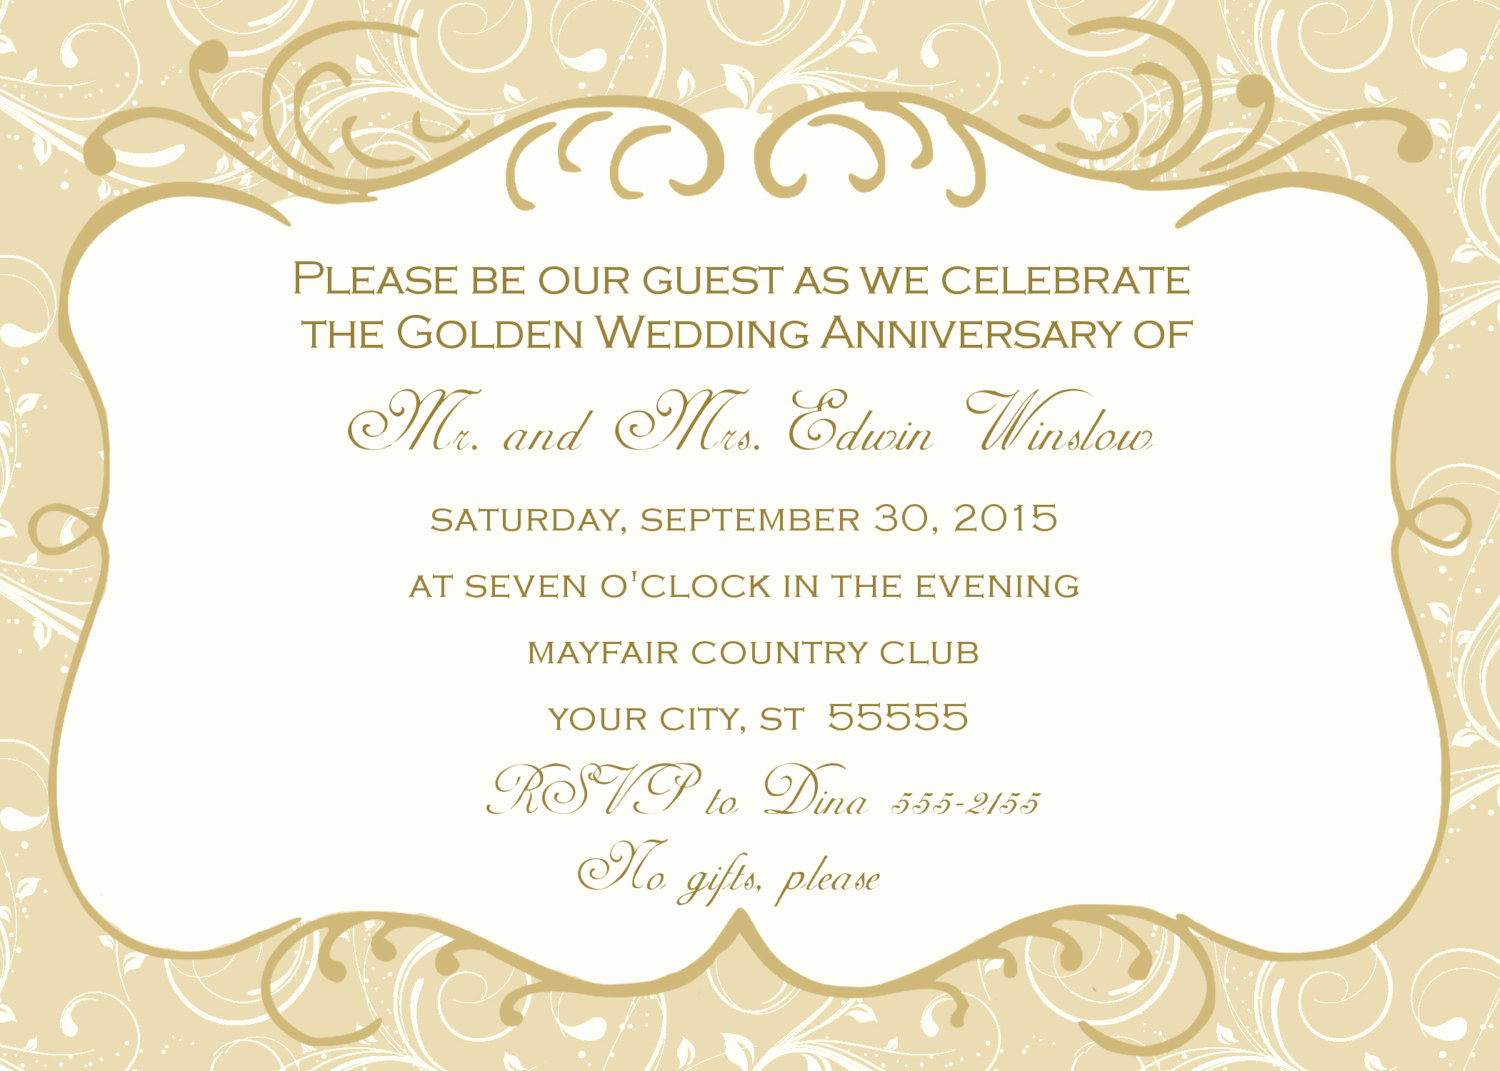 Golden Anniversary Invitation Wording Lovely 50th Wedding Anniversary Invitation